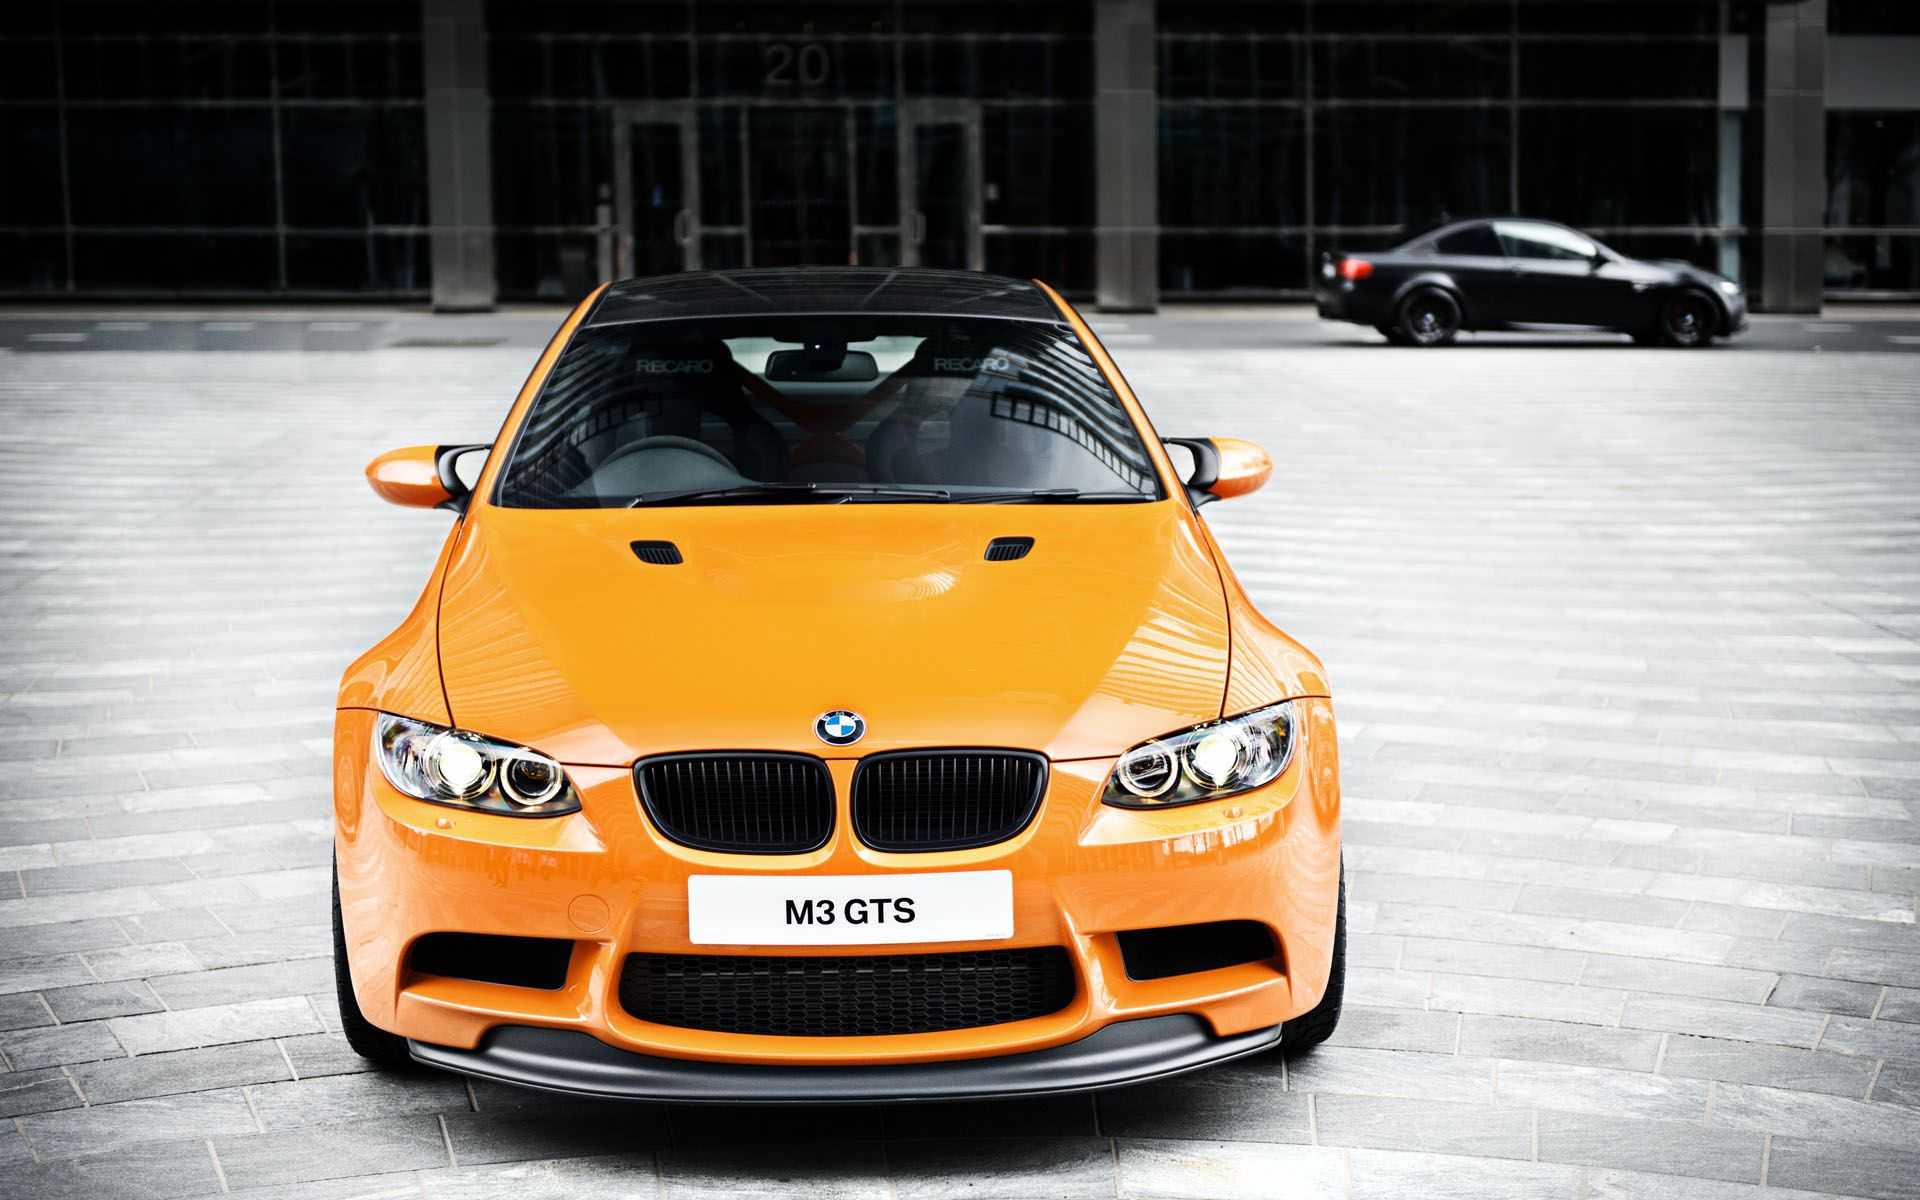 Bmw M3 Gts 2 Hd Wallpapers Http://www.hdcarwallpapers.in/